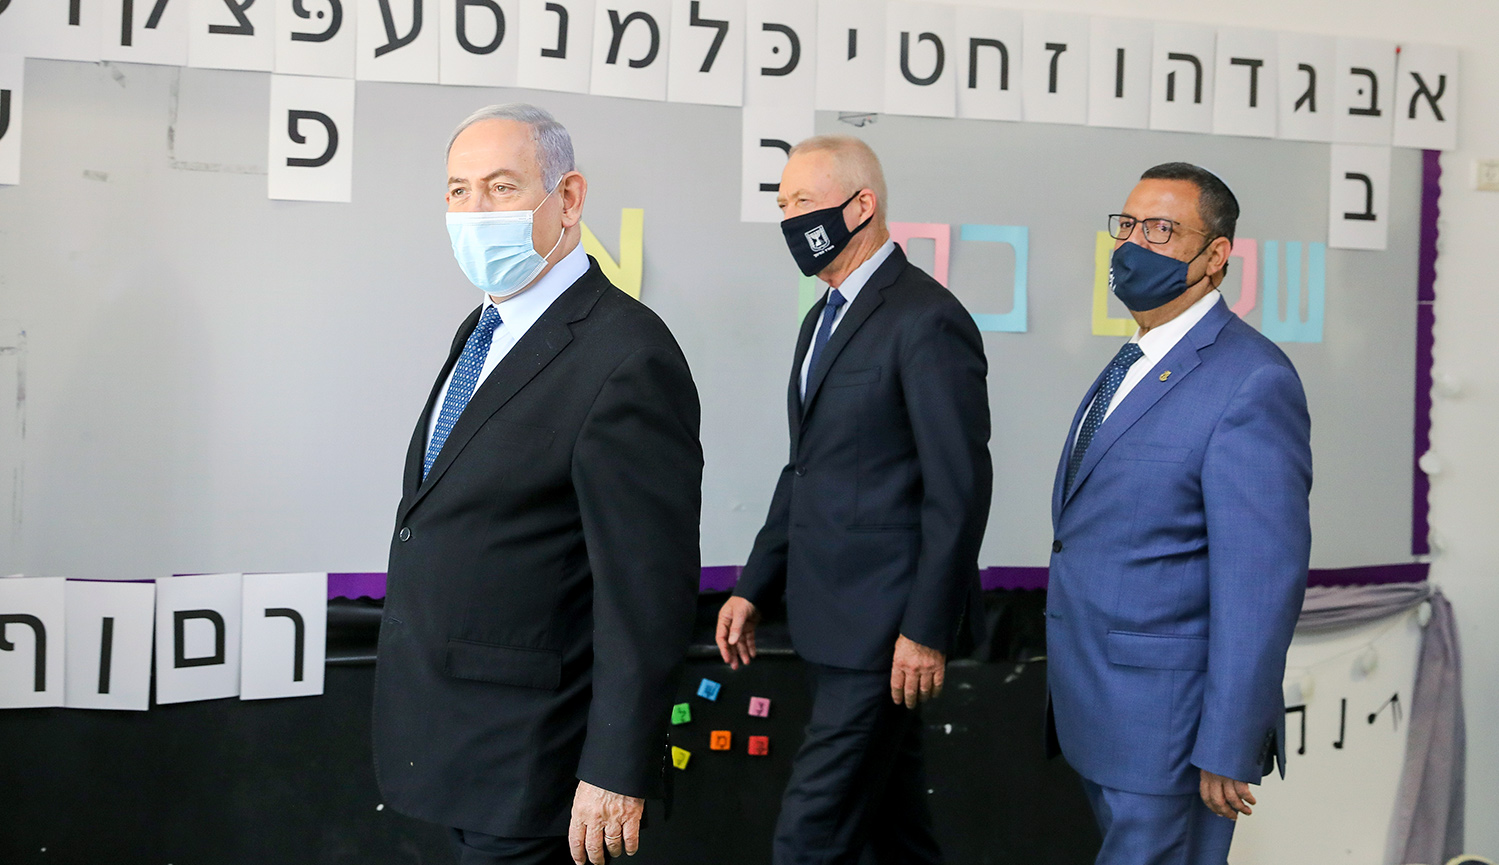 Israeli Prime Minister Benjamin Netanyahu and Minister of Education Yoav Galant visit at a school in Jerusalem ahead of the opening of the school year on August 25, 2020. Marc Israel Sellem/POOL.